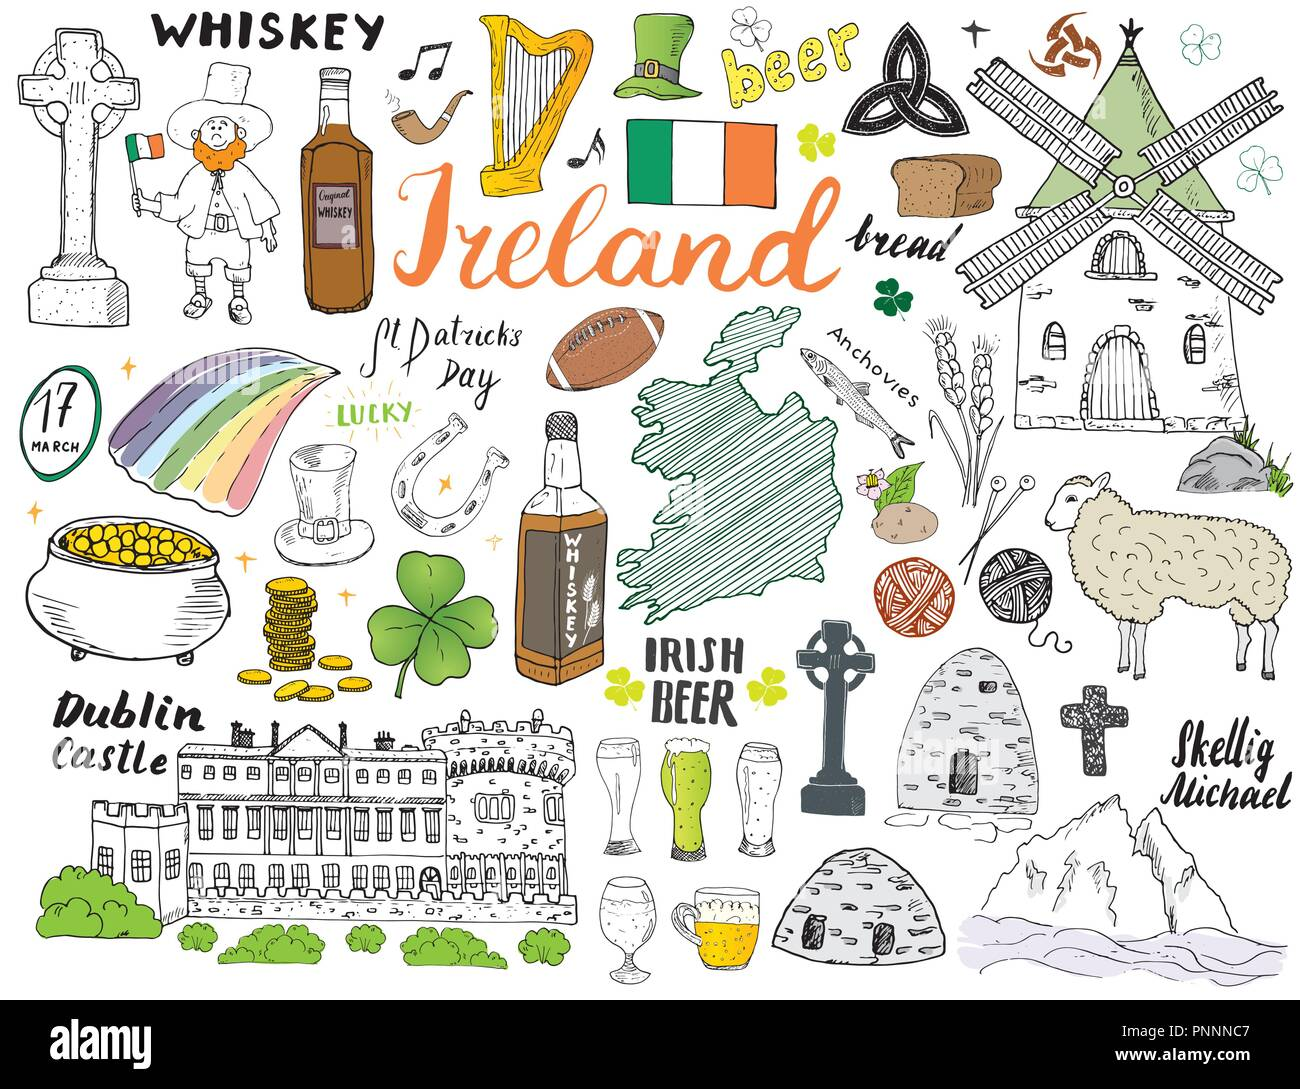 Sketch Map Of Ireland.Ireland Sketch Doodles Hand Drawn Irish Elements Set With Flag And